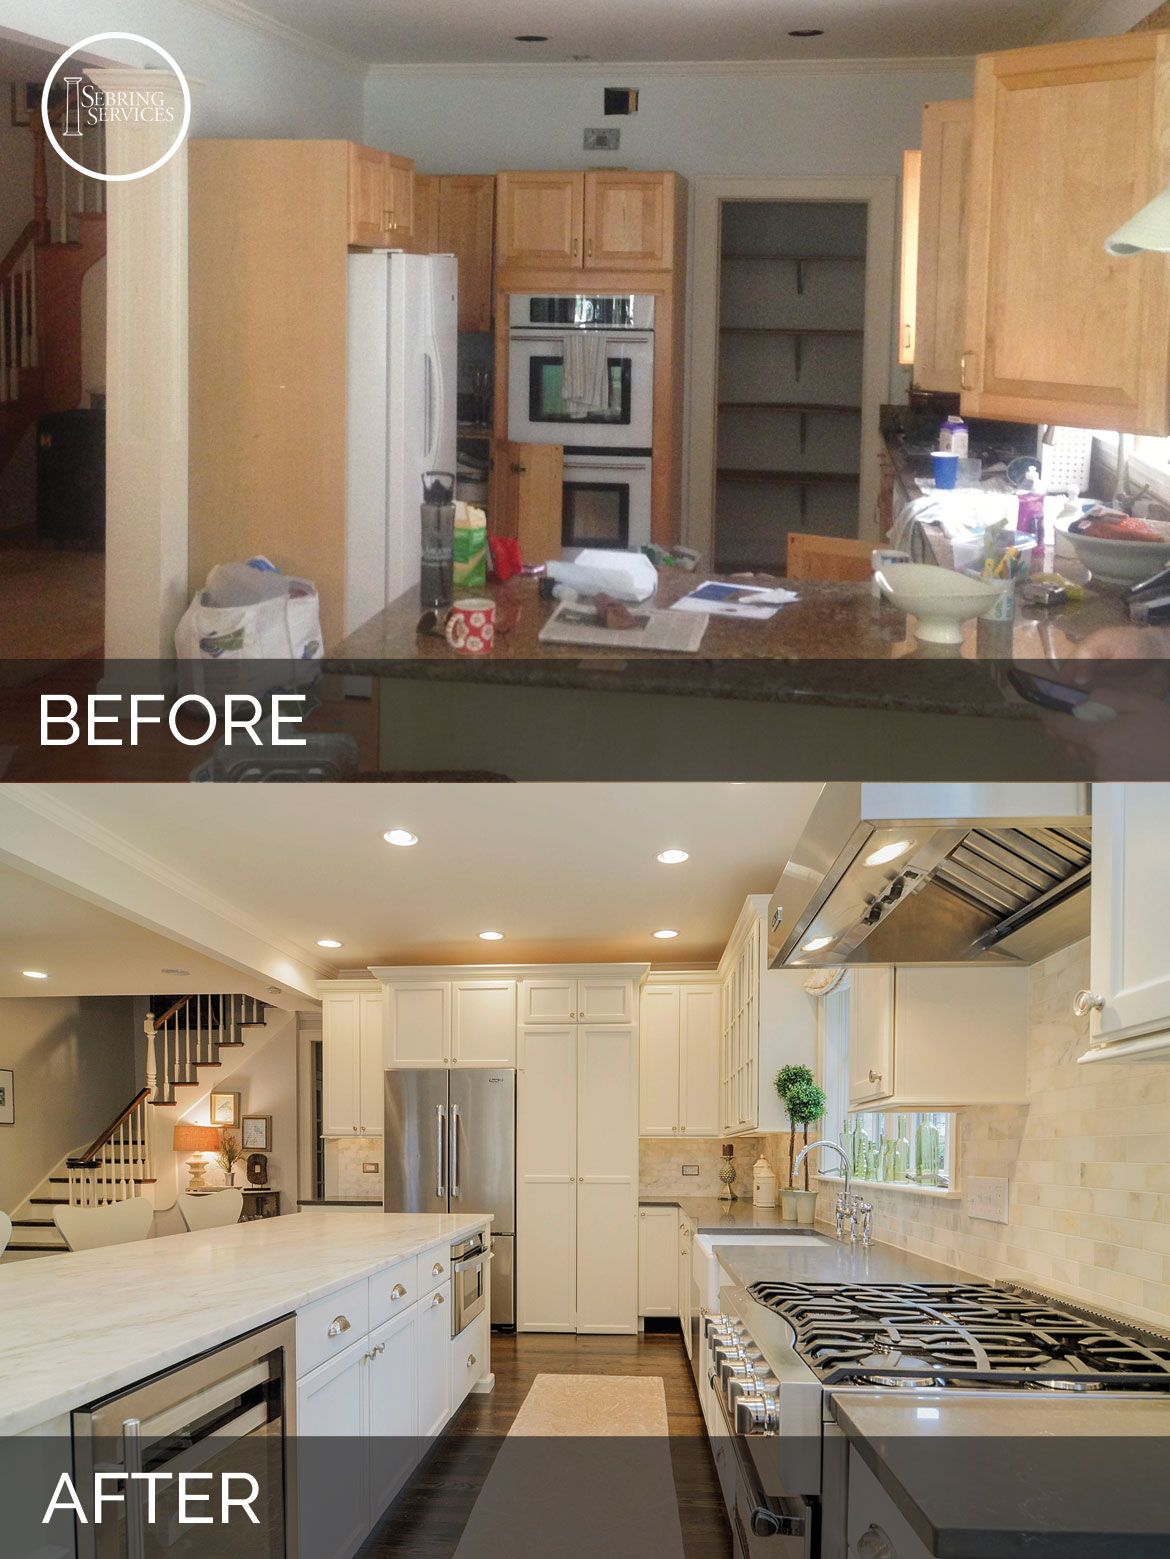 Ben ellen 39 s kitchen before after pictures kitchens for Small kitchen remodeling ideas home renovation